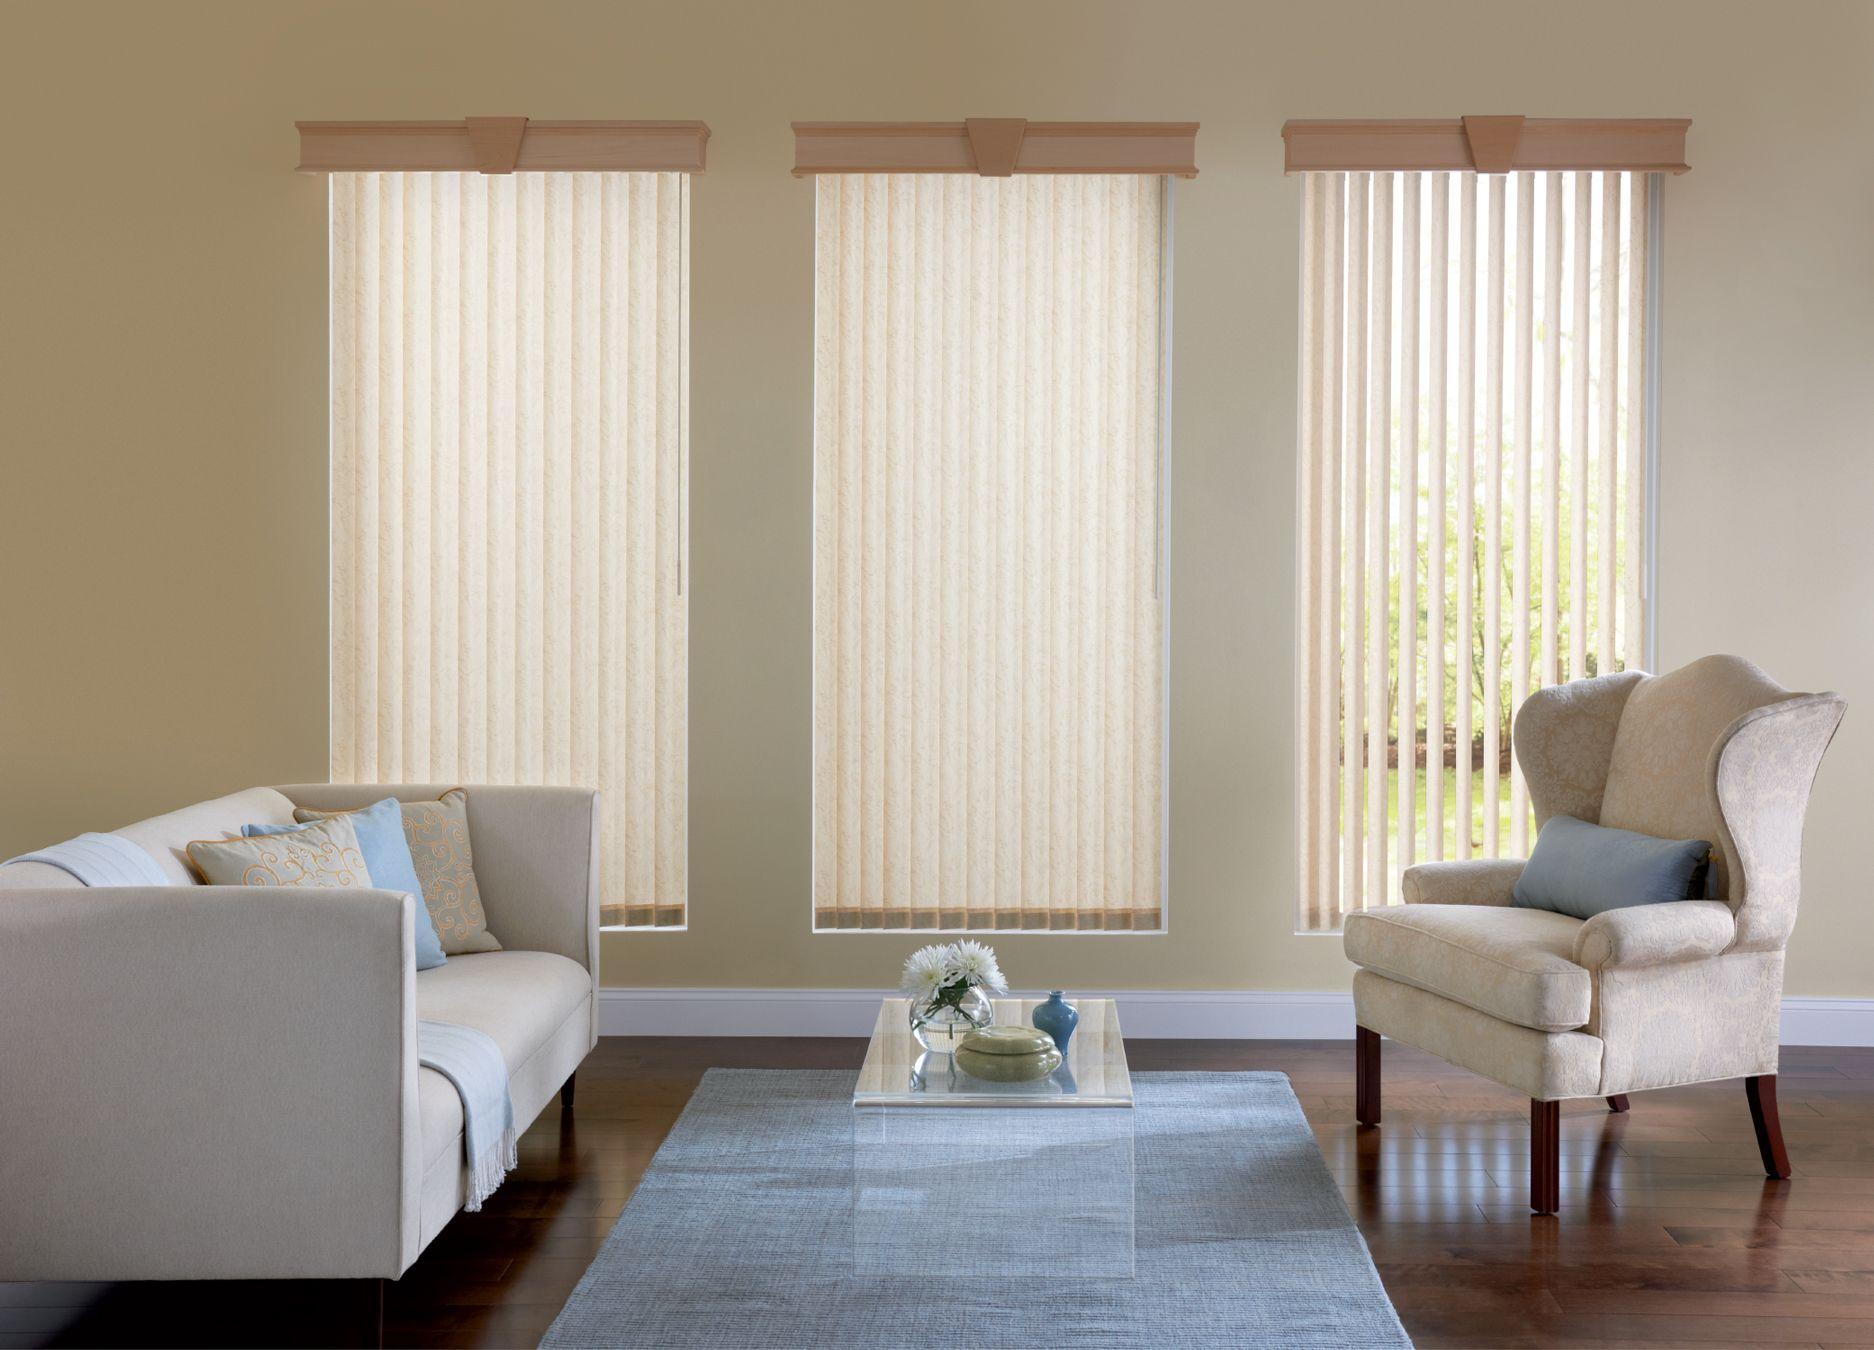 Sheer Curtains Over Vertical Blinds Within Vertical Blinds 3